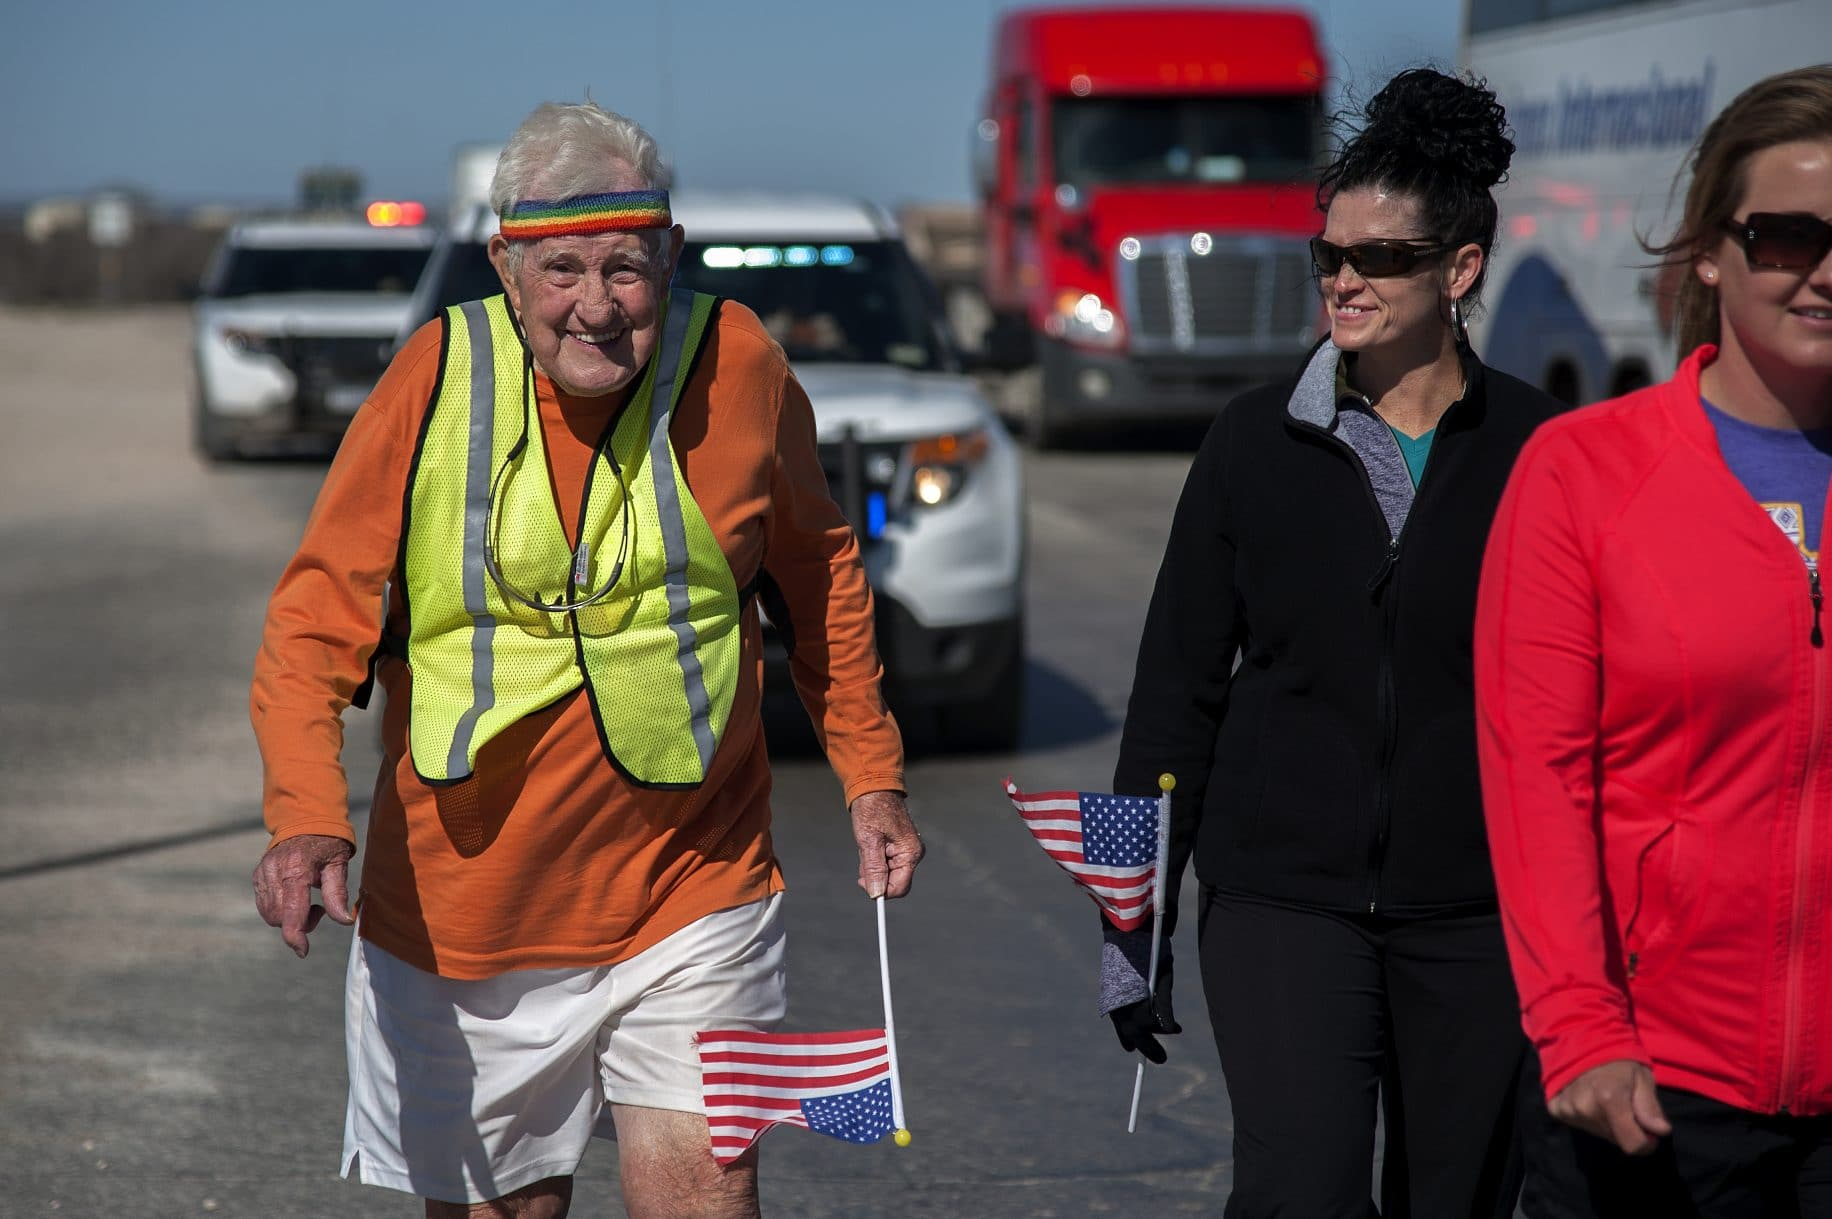 95-year-old WWII vet is walking cross country for 2nd time